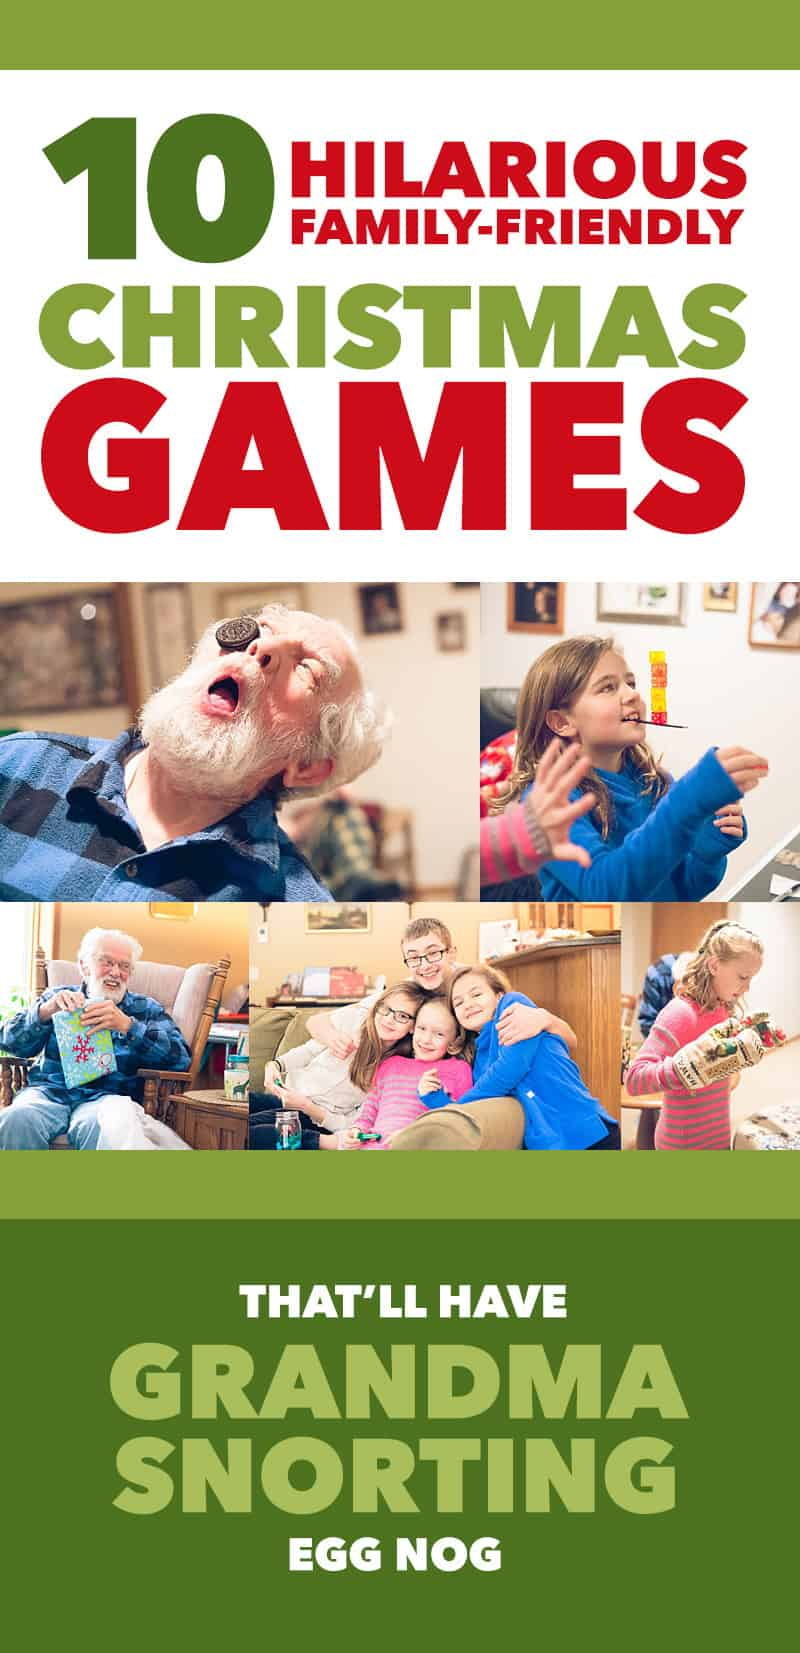 Minute To Win It Christmas Games.10 Hilarious Family Christmas Games That Ll Have Nana